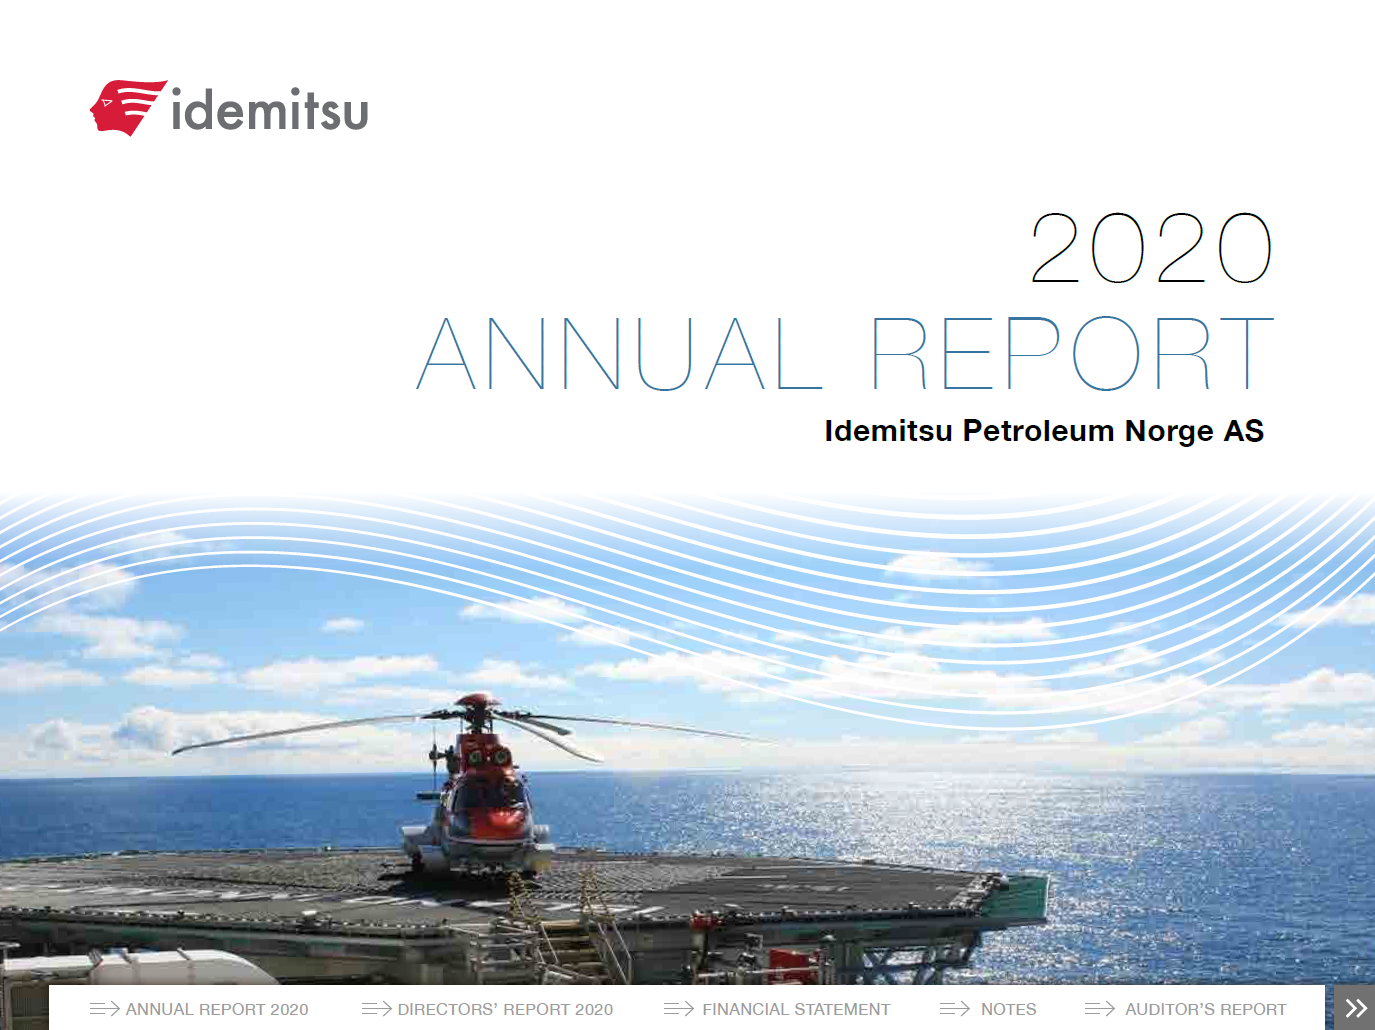 Annual report frontpage 2020 Idemitsu Petroleum Norge, helicopter on rig